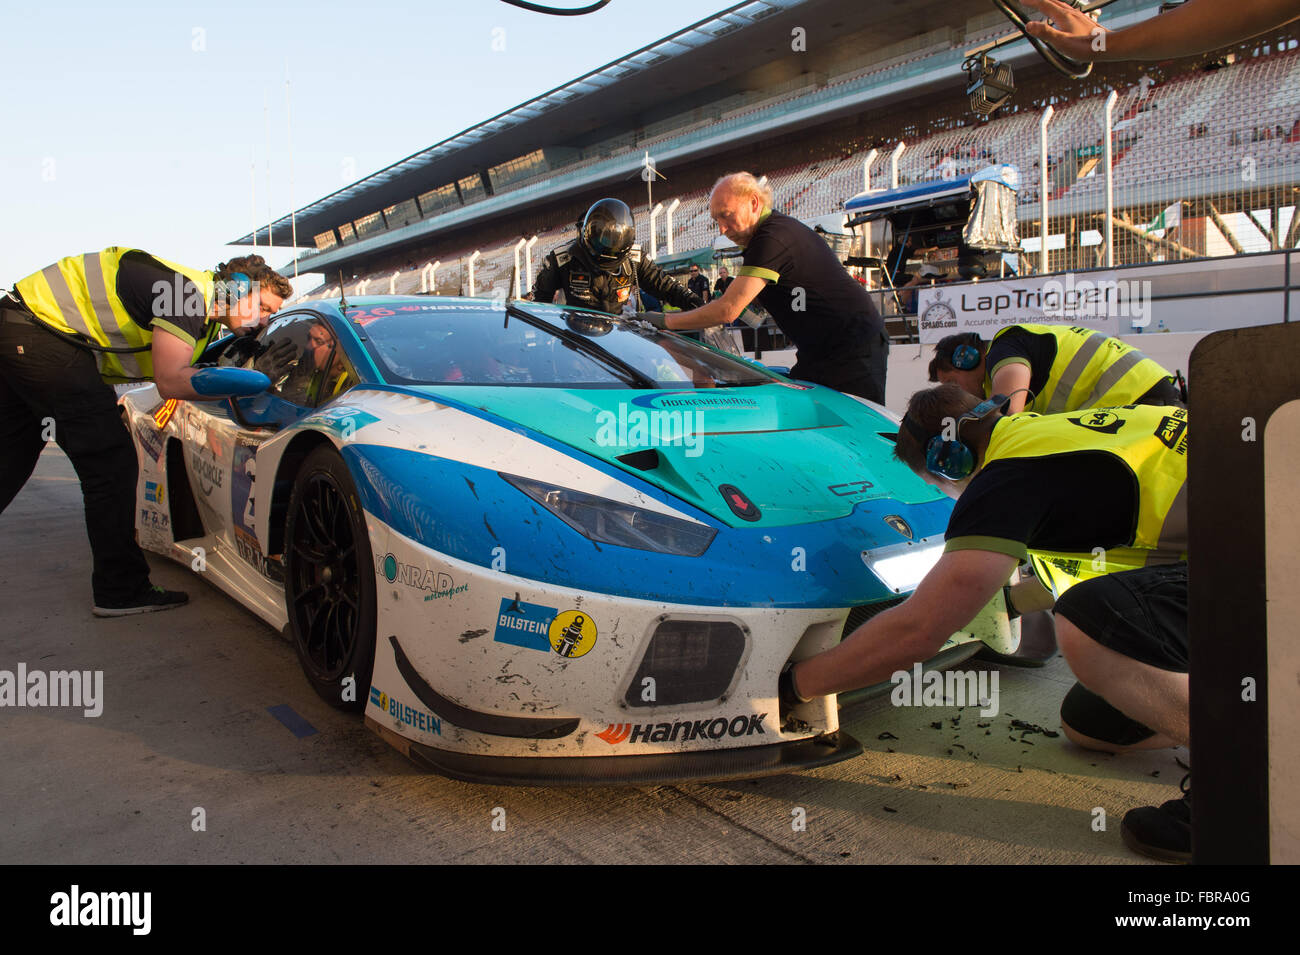 Konrad Motorsport Lamborghini in the pit lane during the evening of the Hankook 24H Dubai endurance car race - Stock Image